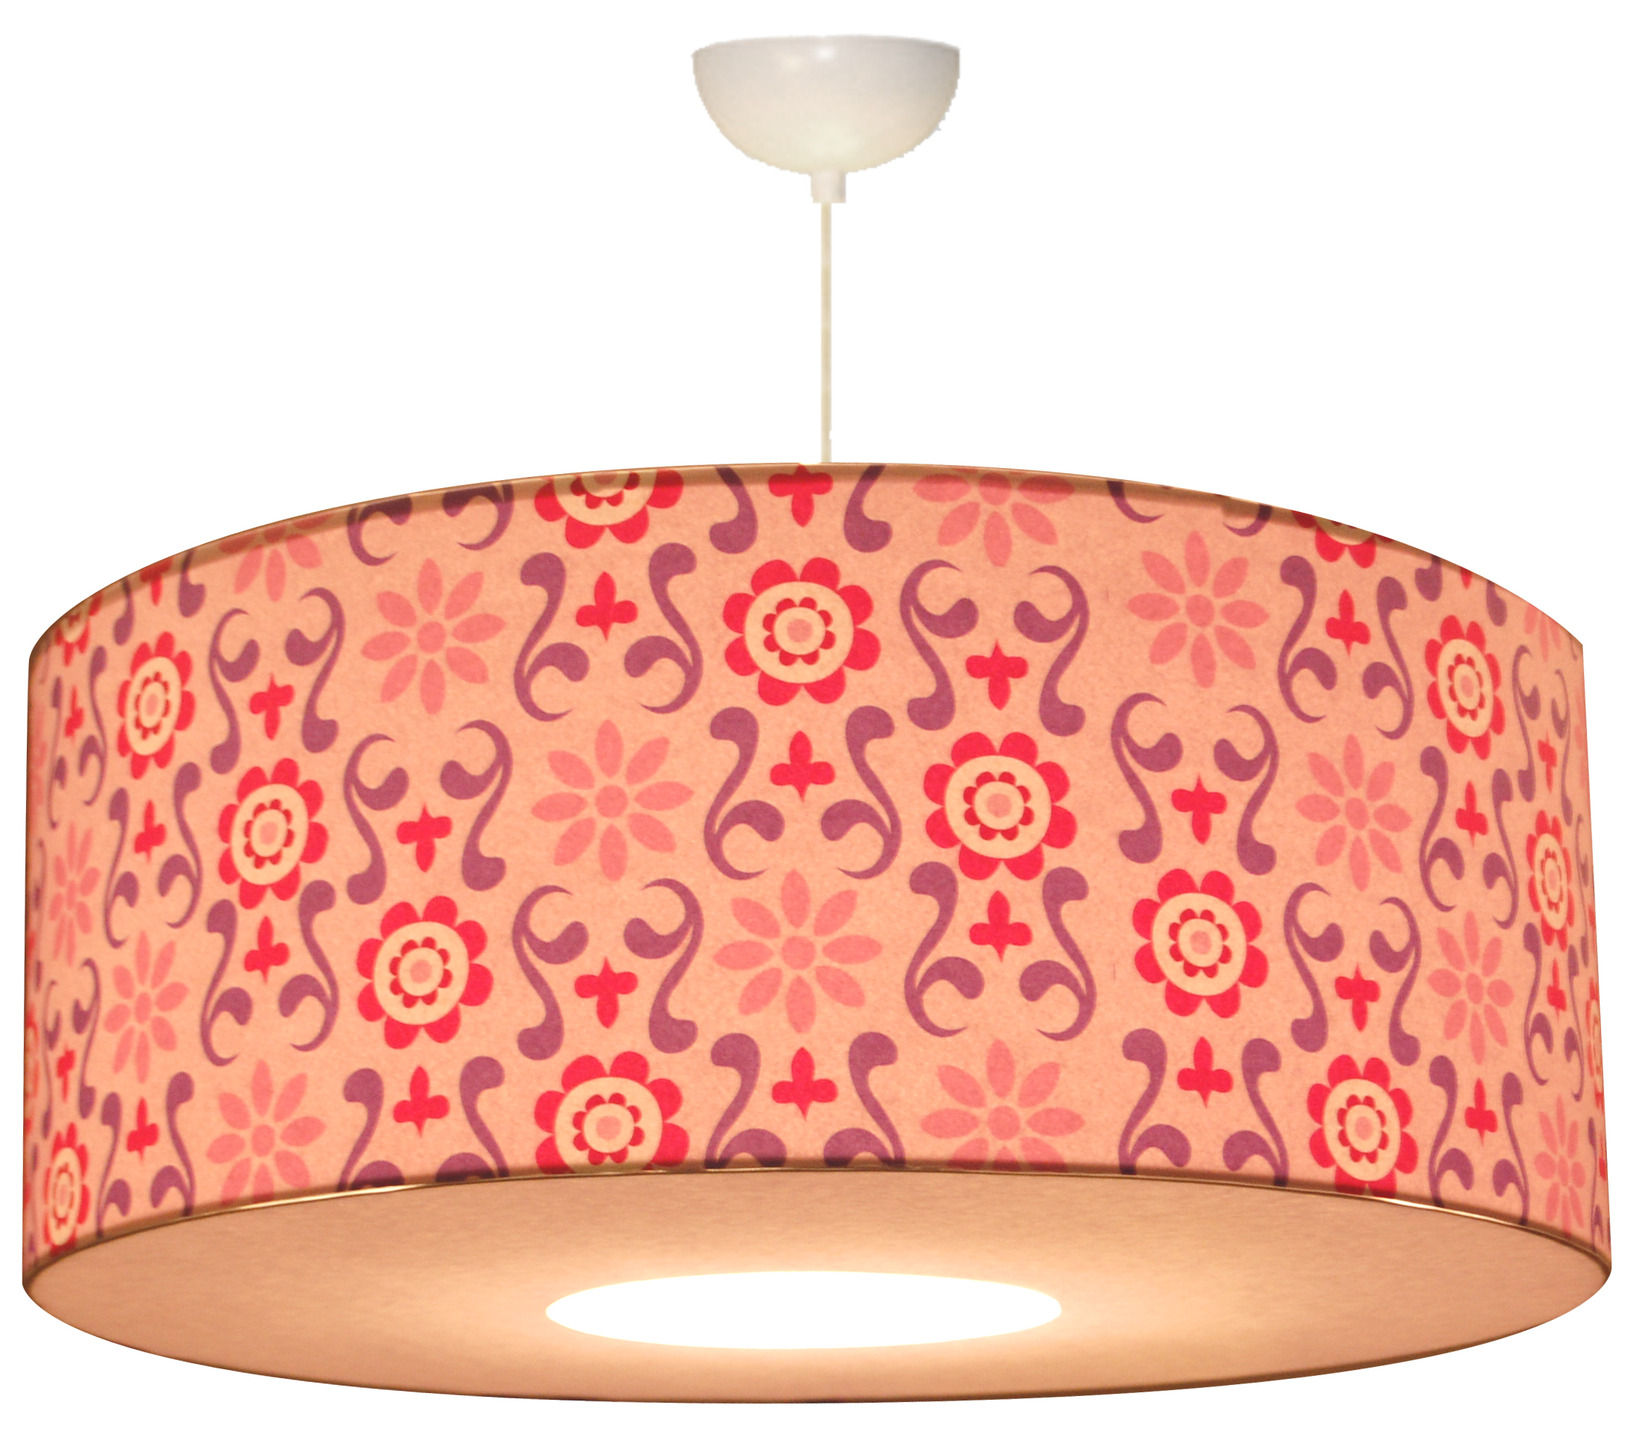 Luminaires suspension plafonnier wallpaper 7723585 wallpaper 202e4 0a461 big